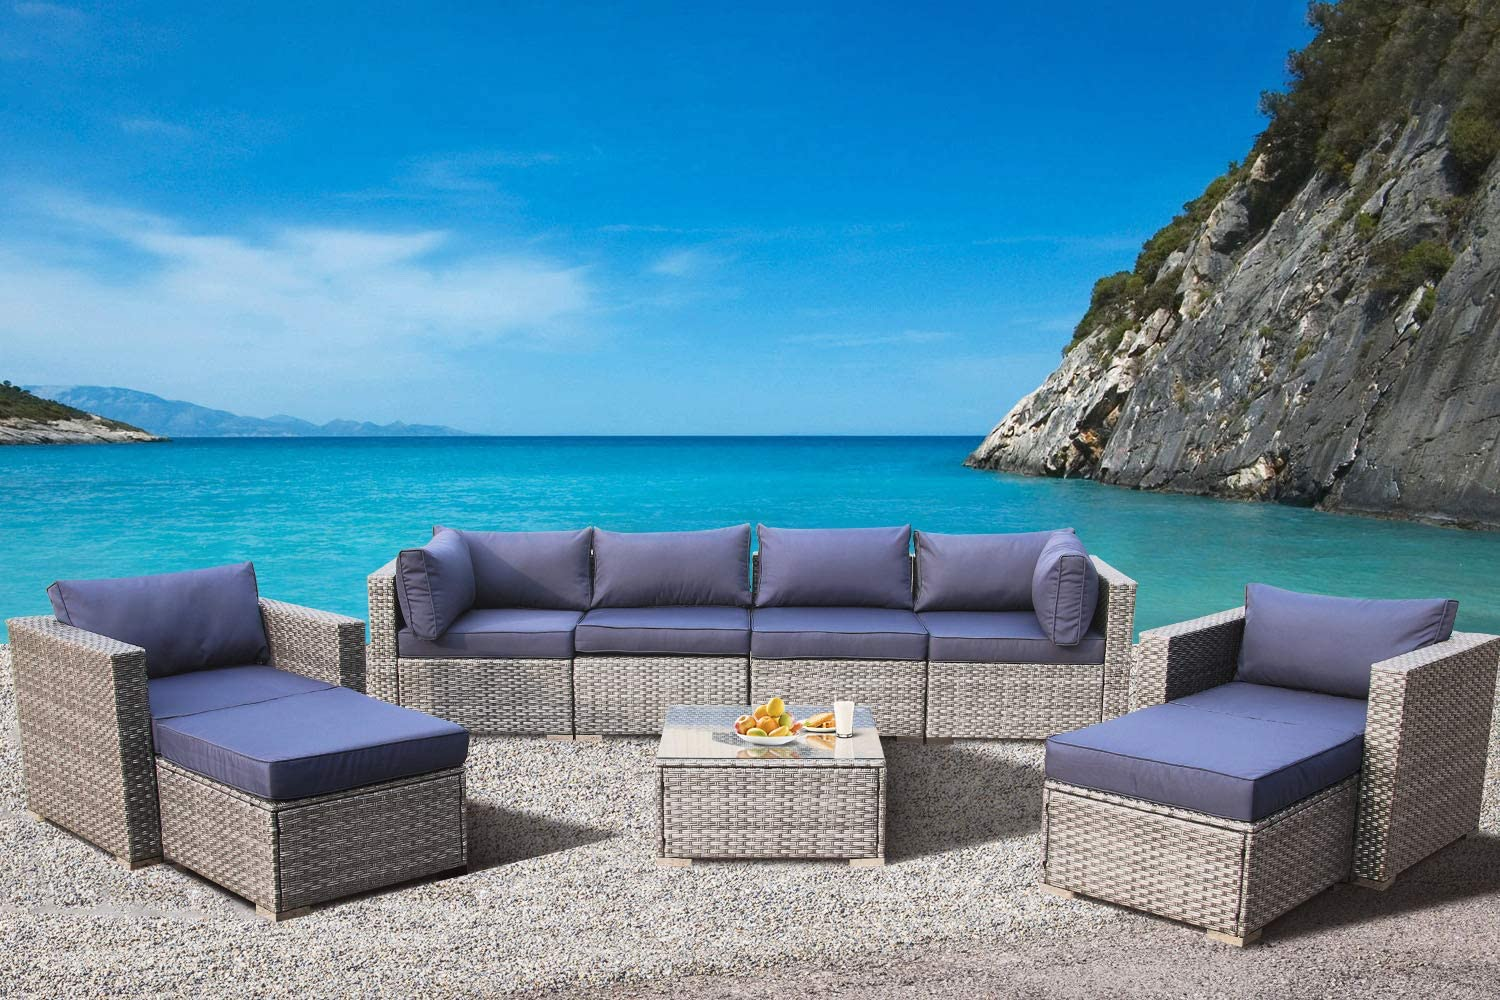 Leaptime Patio Furniture Sofa Garden Couch Set 9-Piece PE Gray Rattan Sofa Outdoor Sectional Sofa Deck Conversation Furniture Set with Navy Blue Cushion